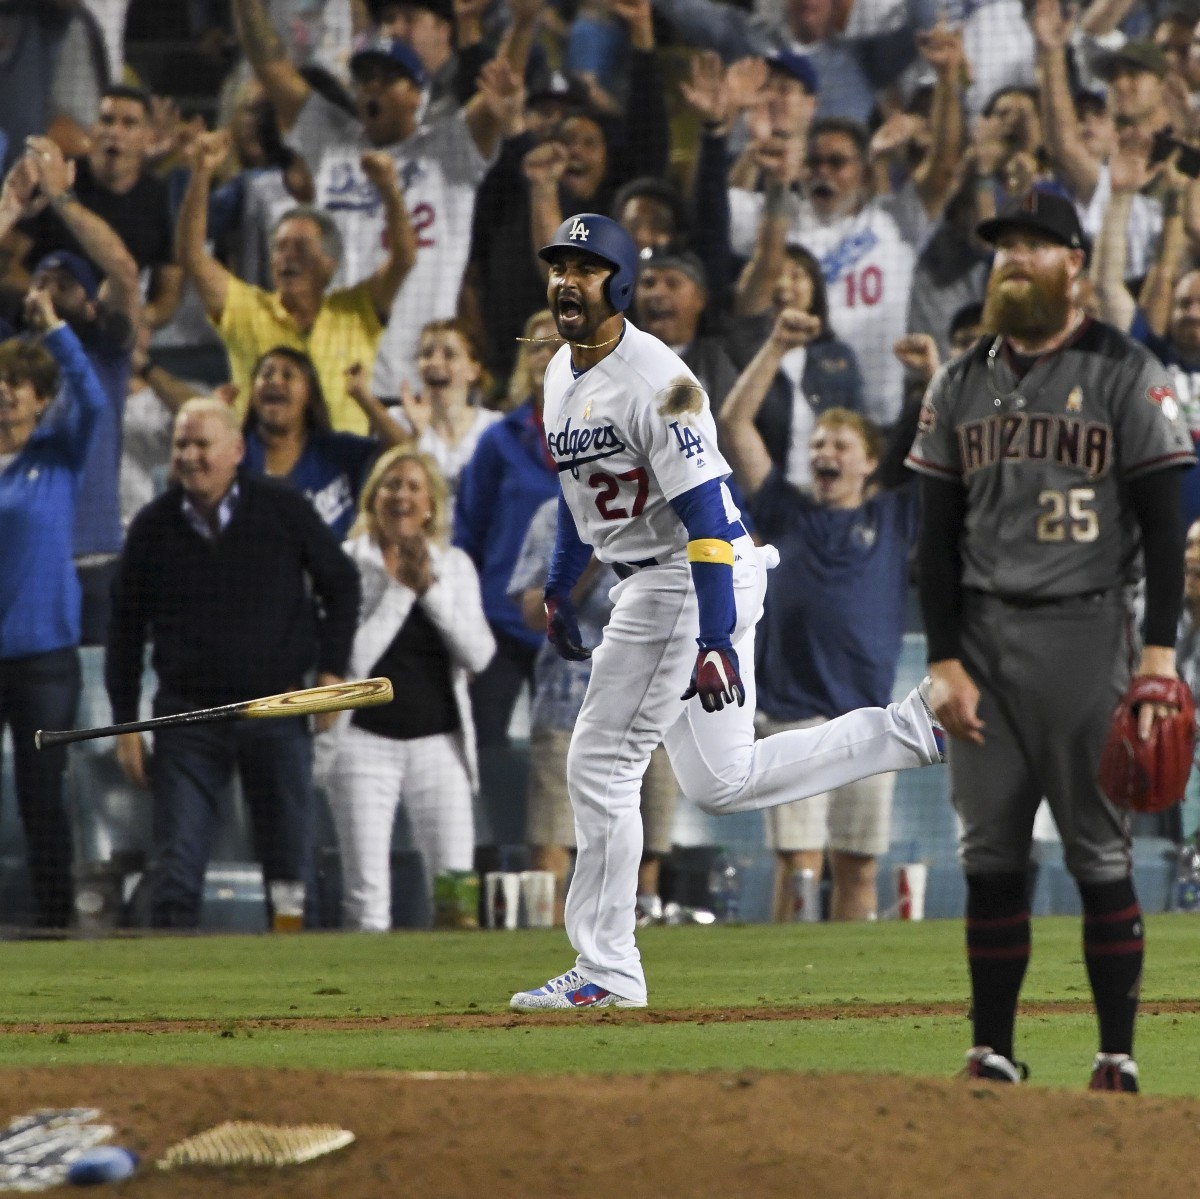 Kemp's biggest homer of the year pulls Dodgers into tie for first